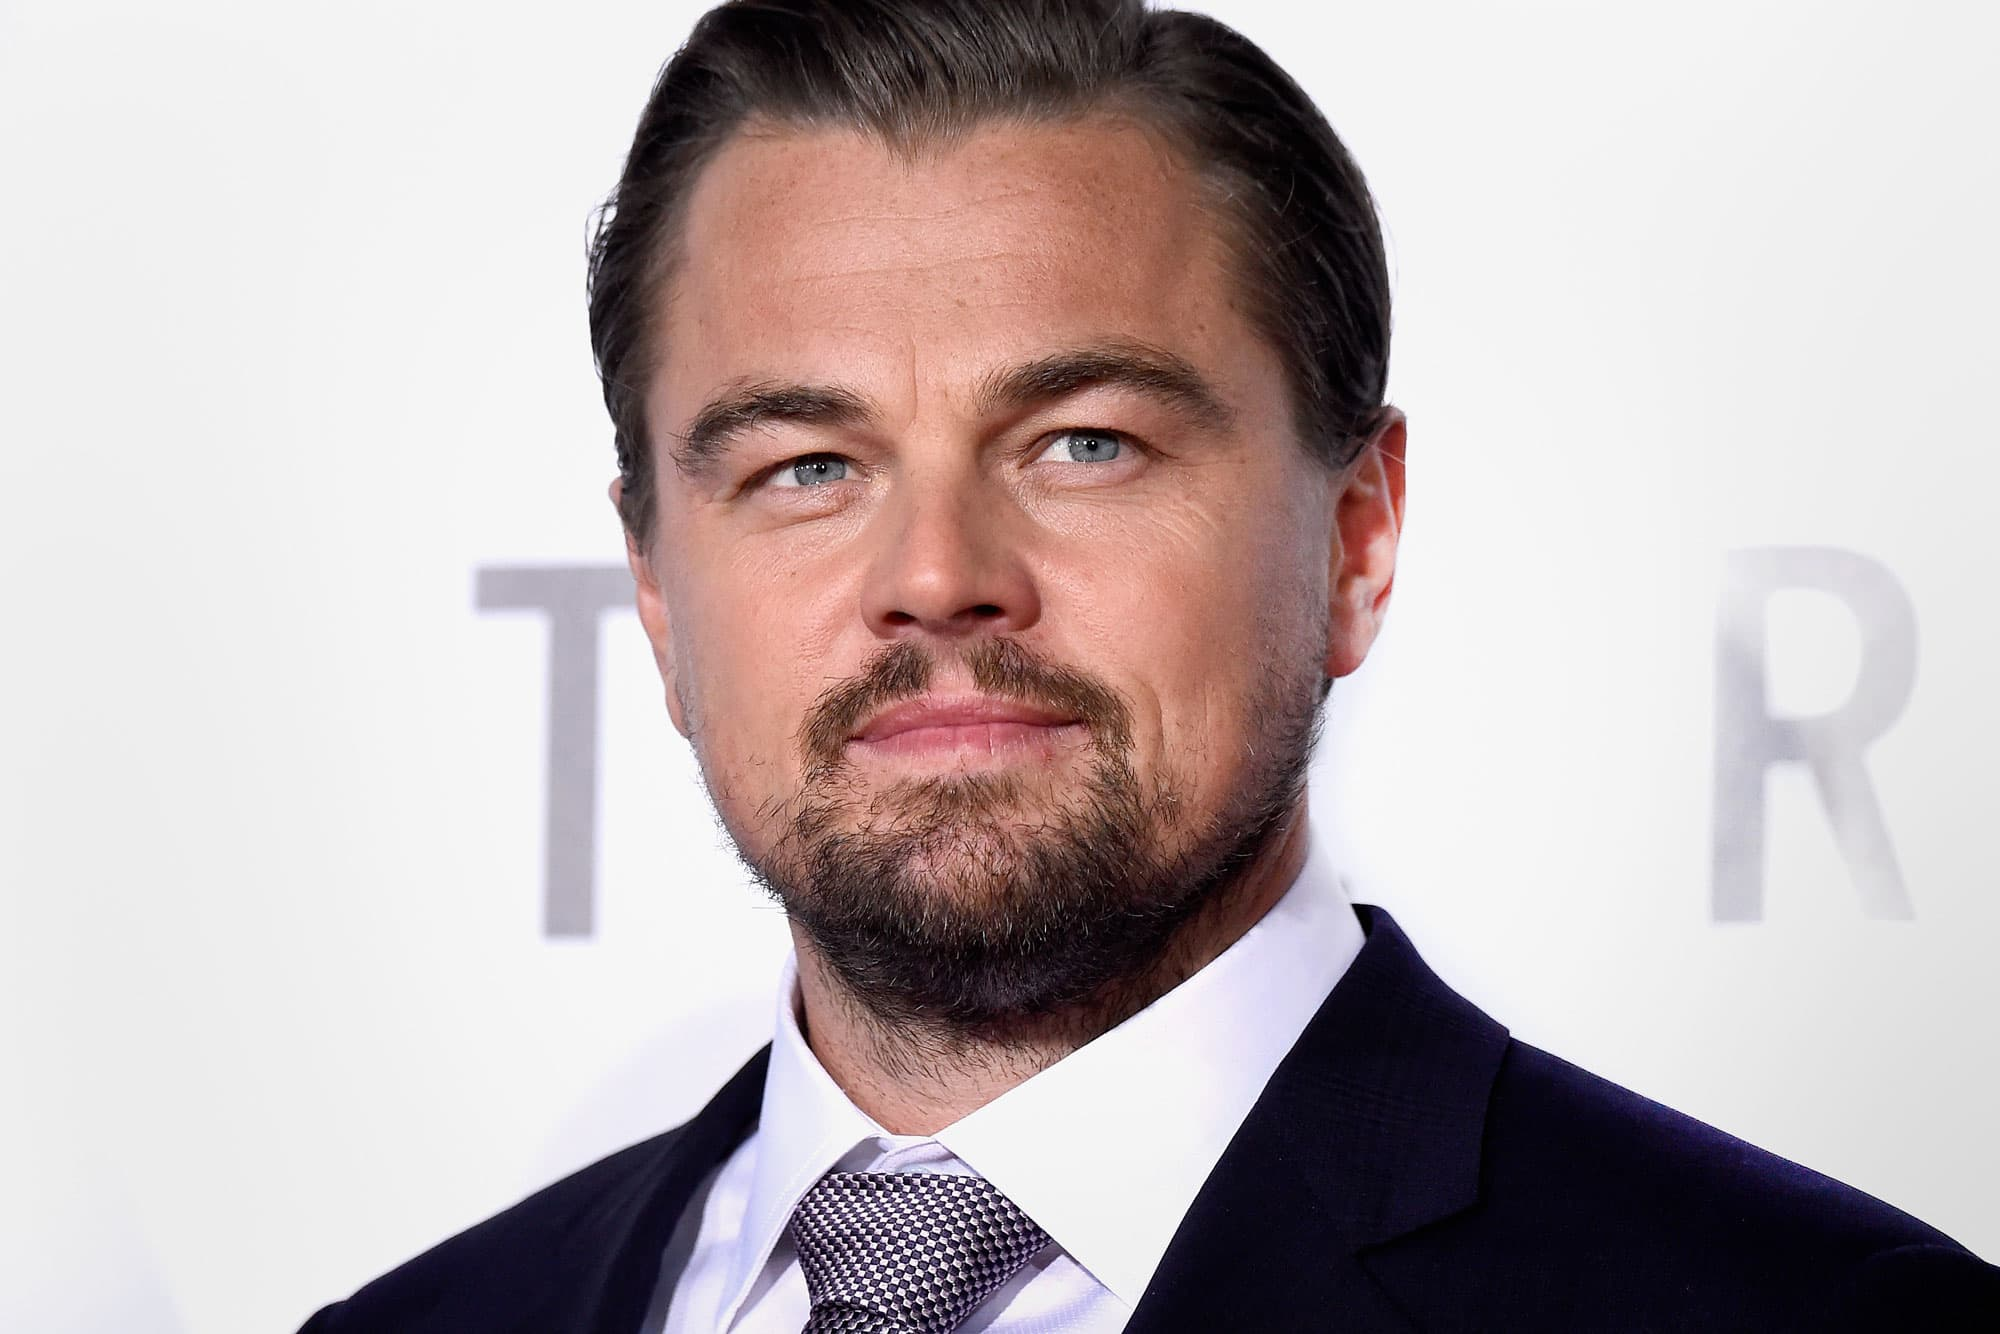 A digital bank that raised $110 million from investors including Leonardo DiCaprio has run into trouble